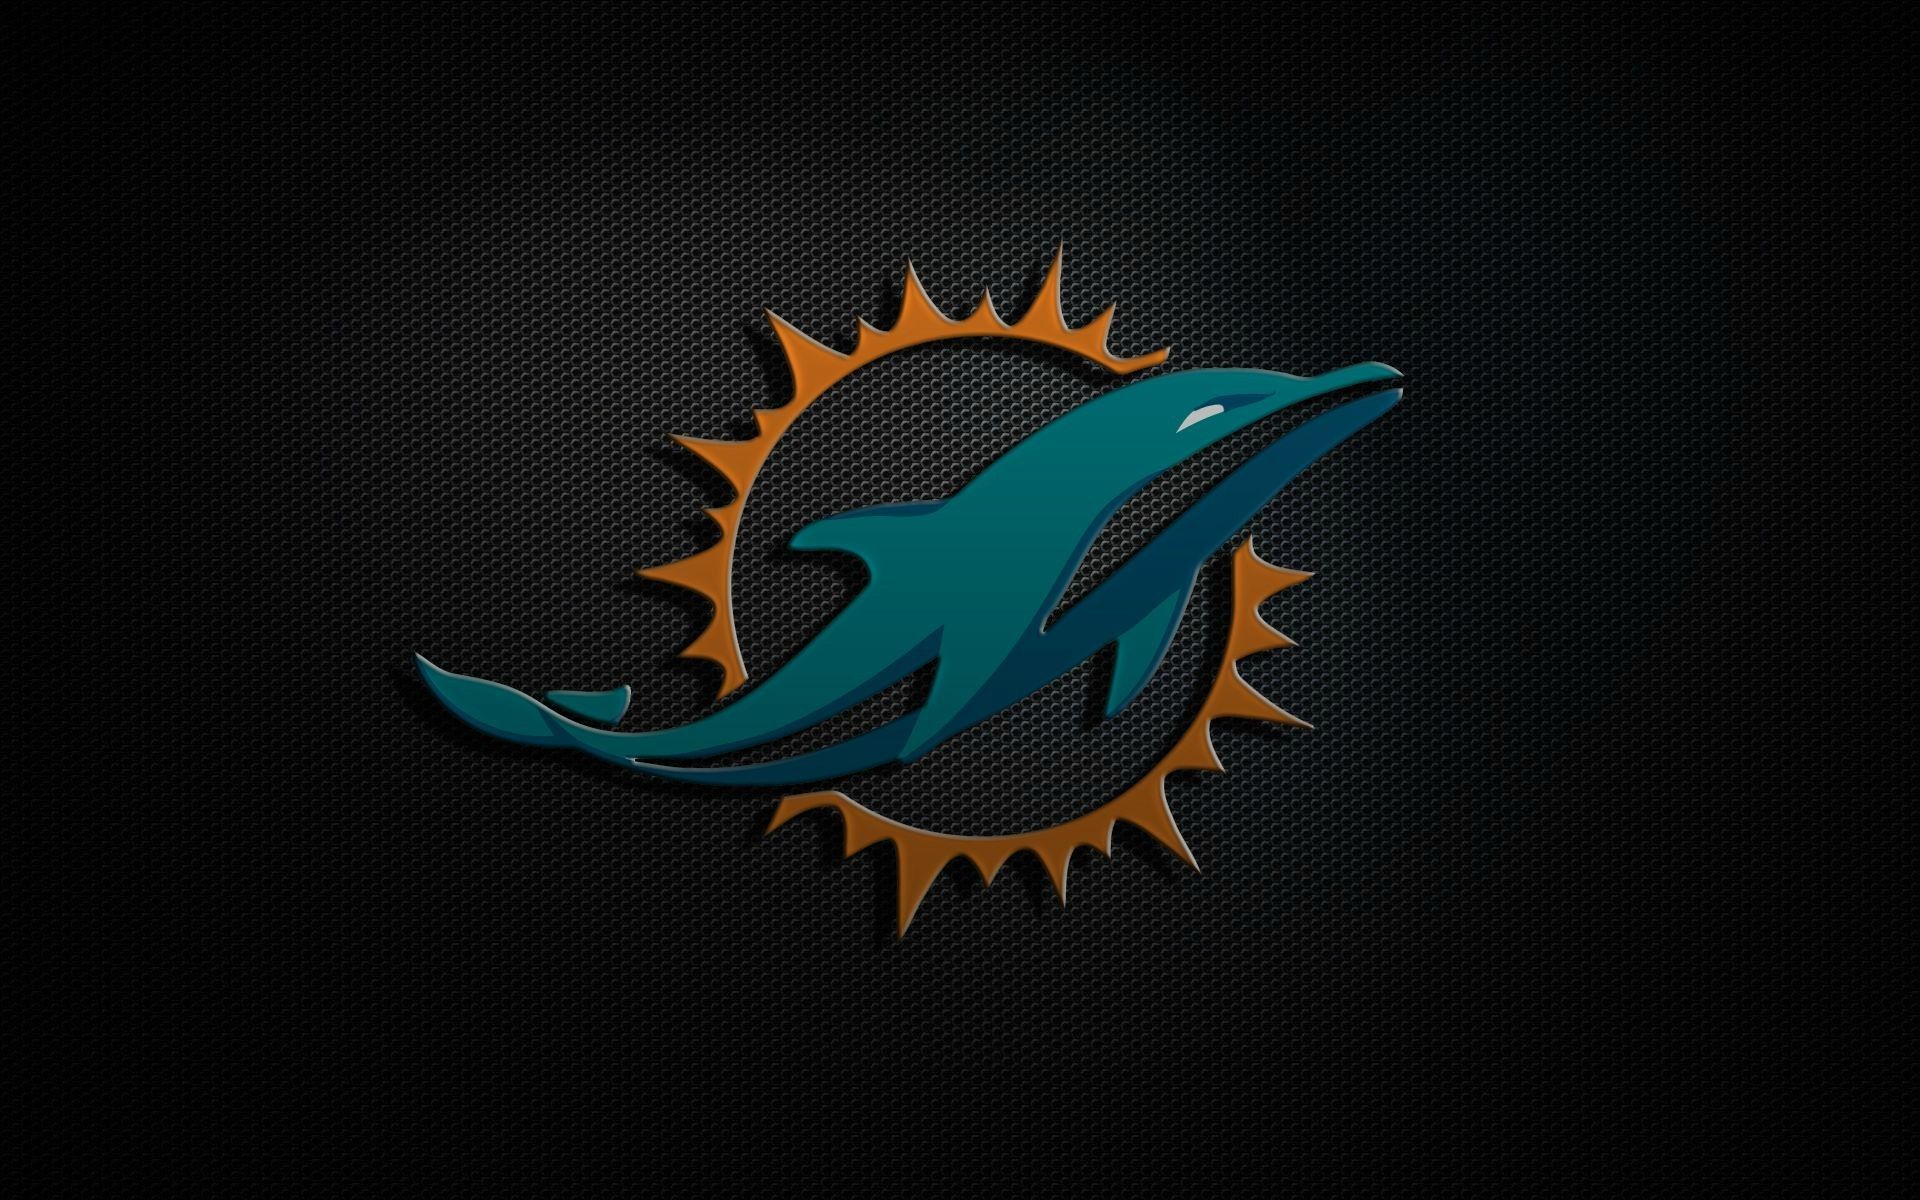 Pink Dolphin Ghost Logo Wallpapers - Top Free Pink Dolphin ...